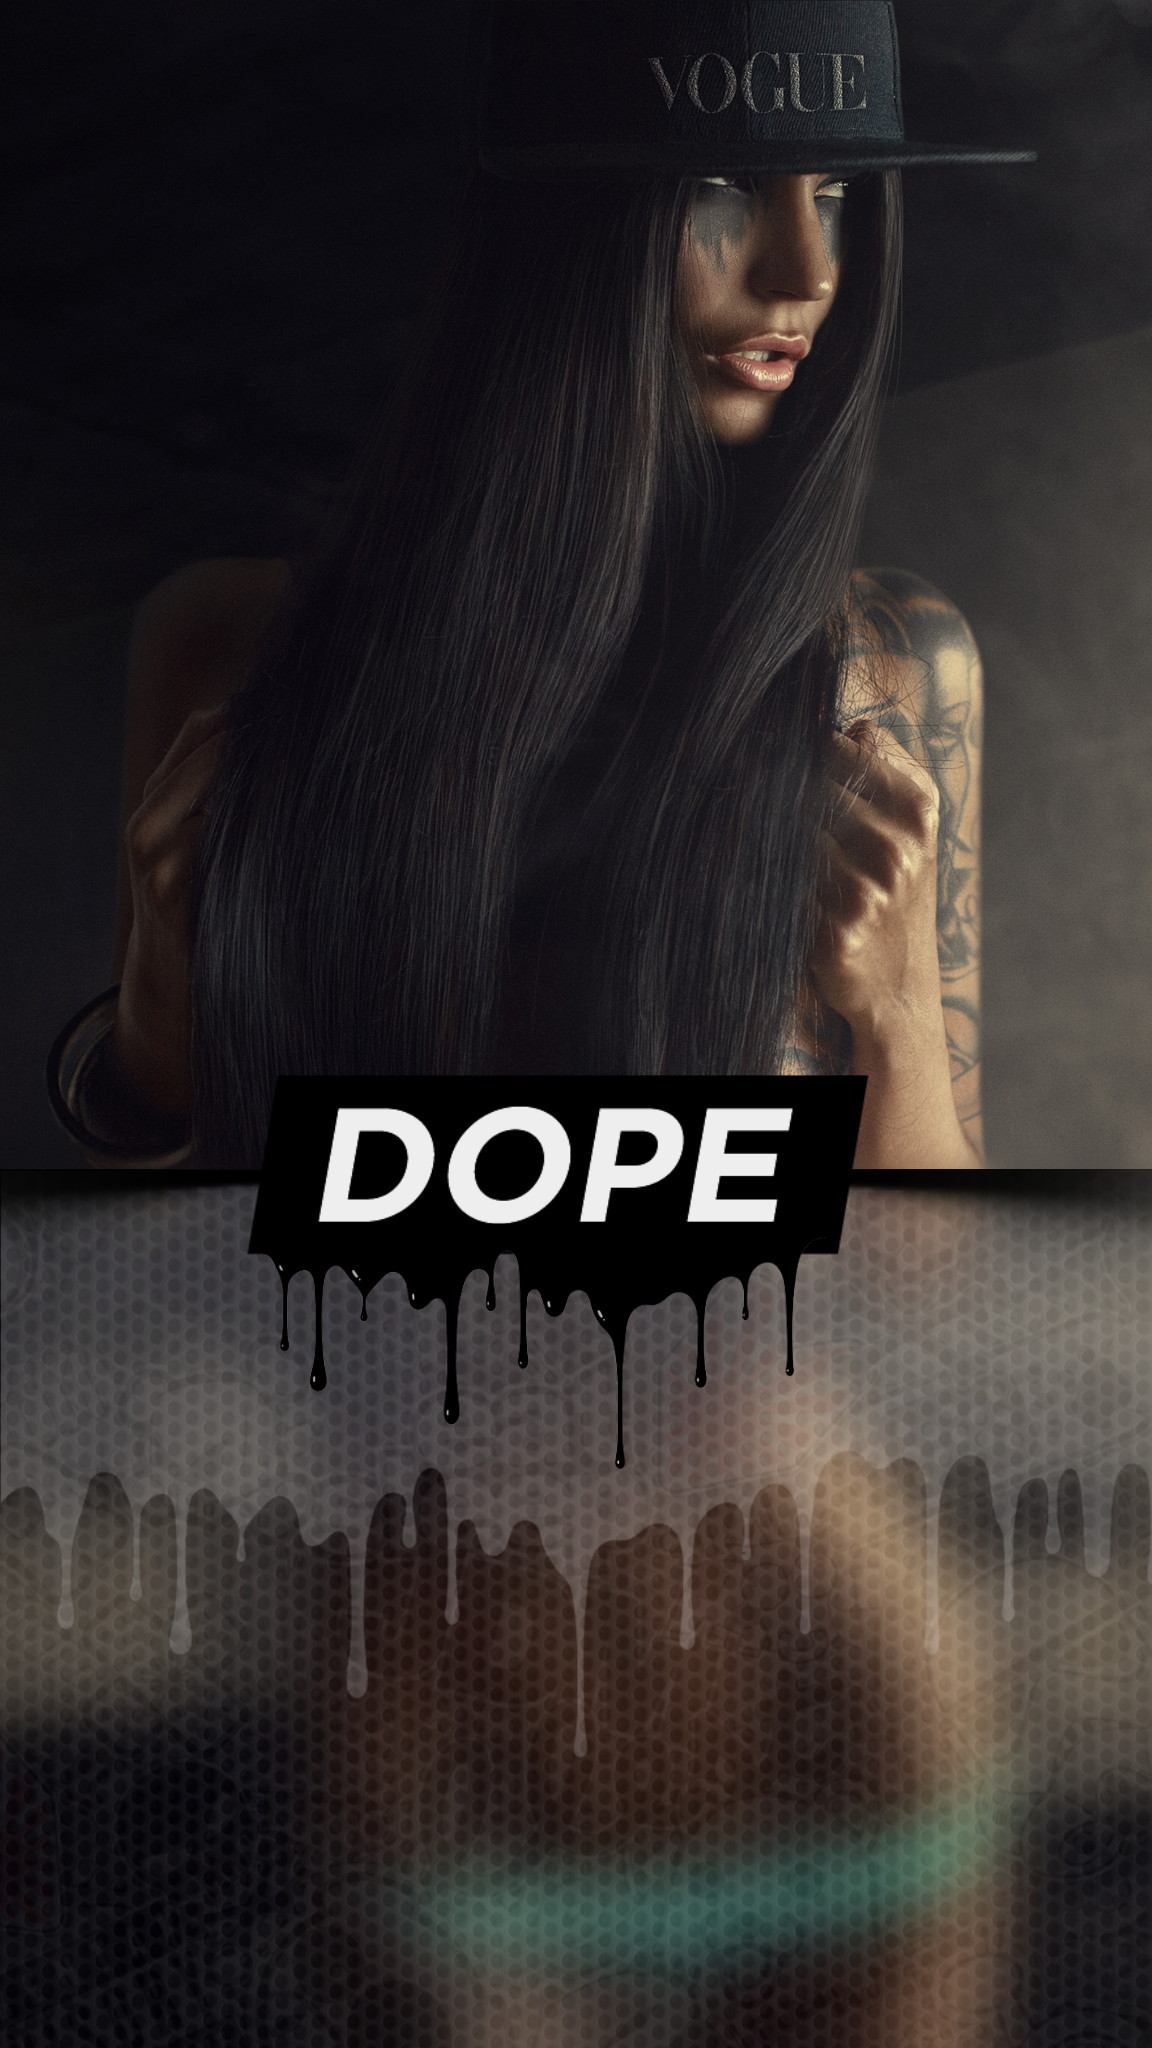 Girls Club, Bad Girls, Dope Wallpapers, Iphone Wallpapers, Art Girl,  Gangsta Girl, Sexy, Chicano, Hiphop